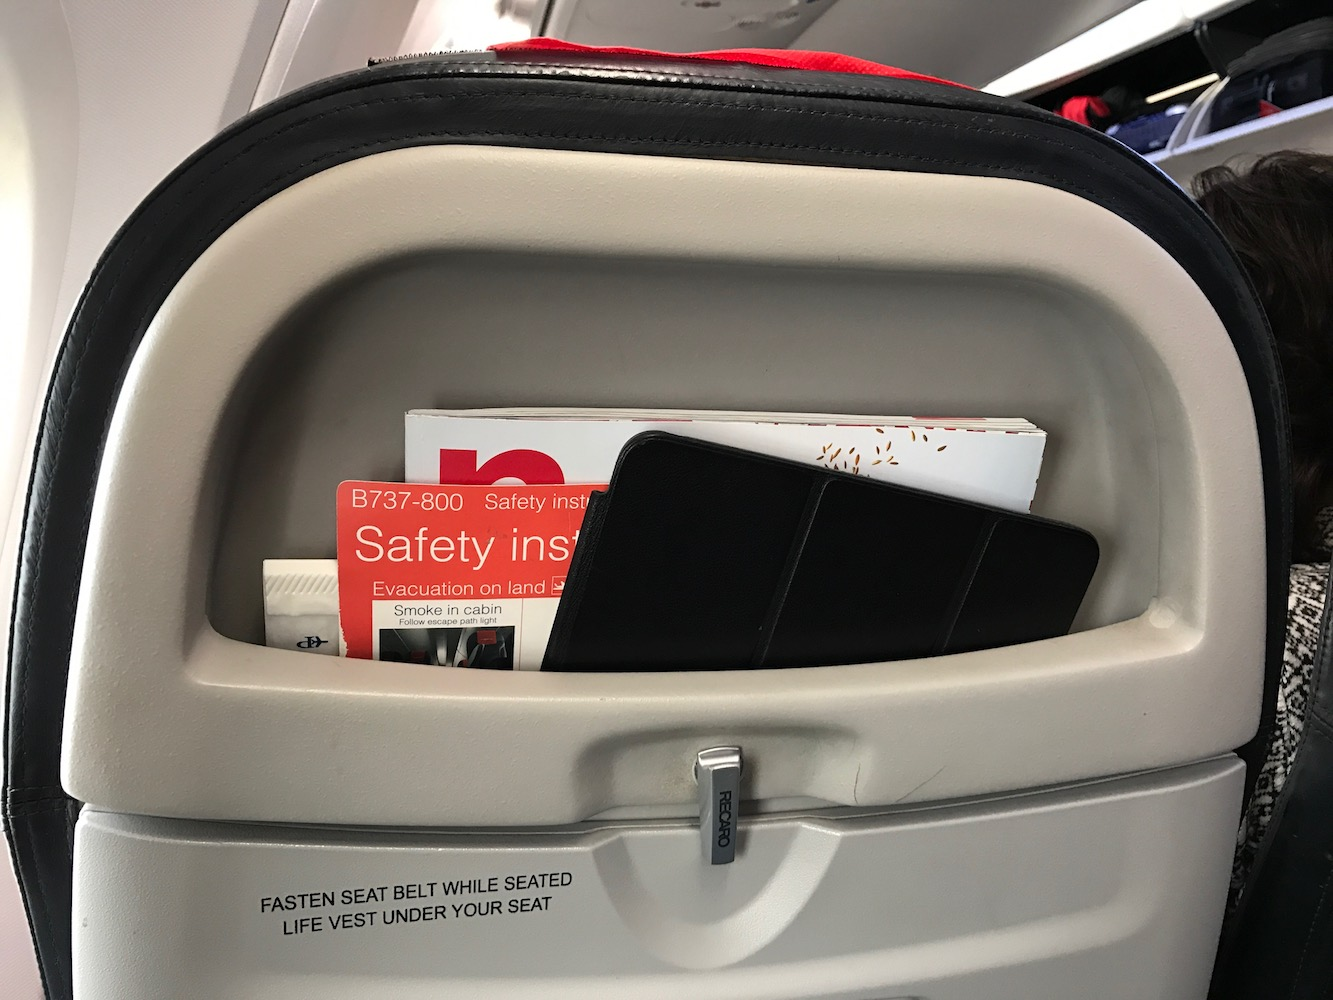 I do appreciate these seat backs for their iPad storage potential.